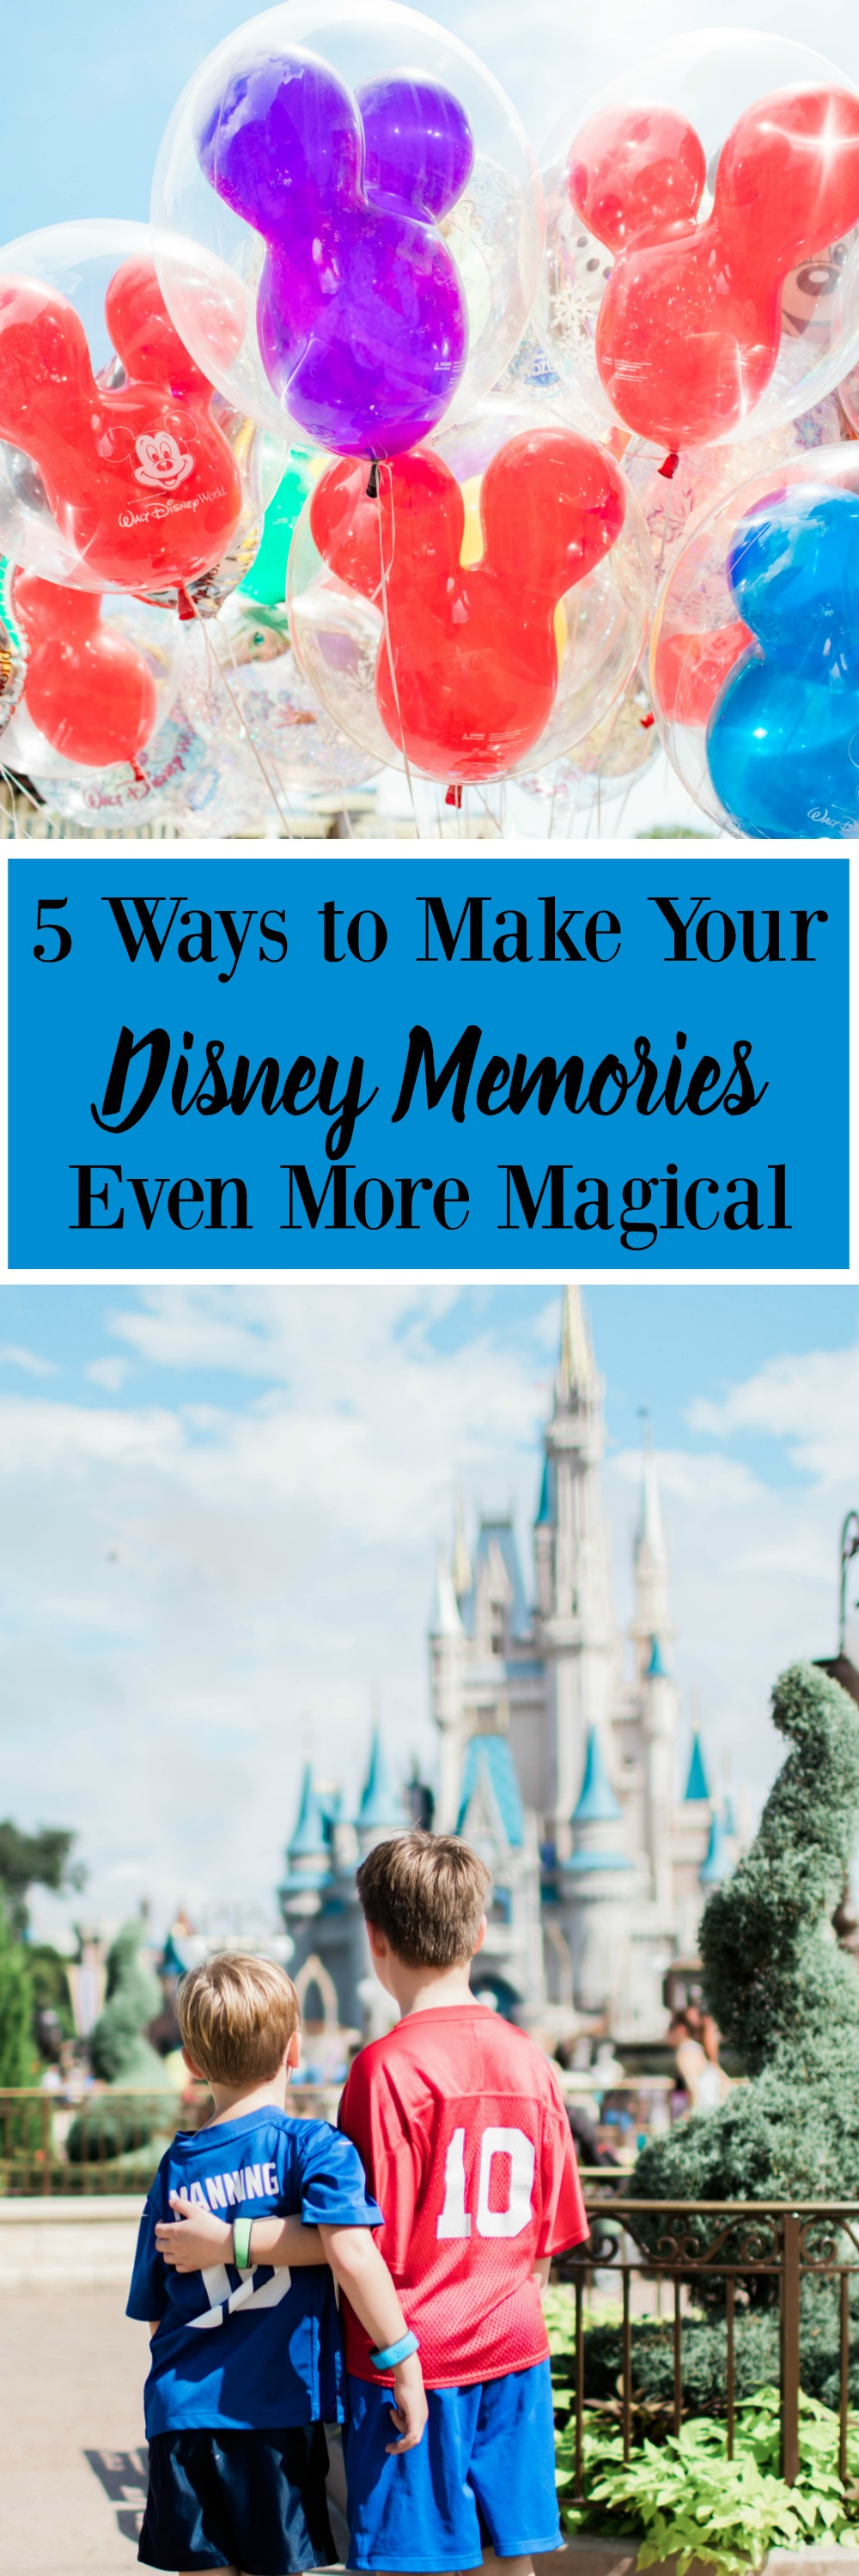 five-ways-to-make-your-disney-memories-even-more-magical-2